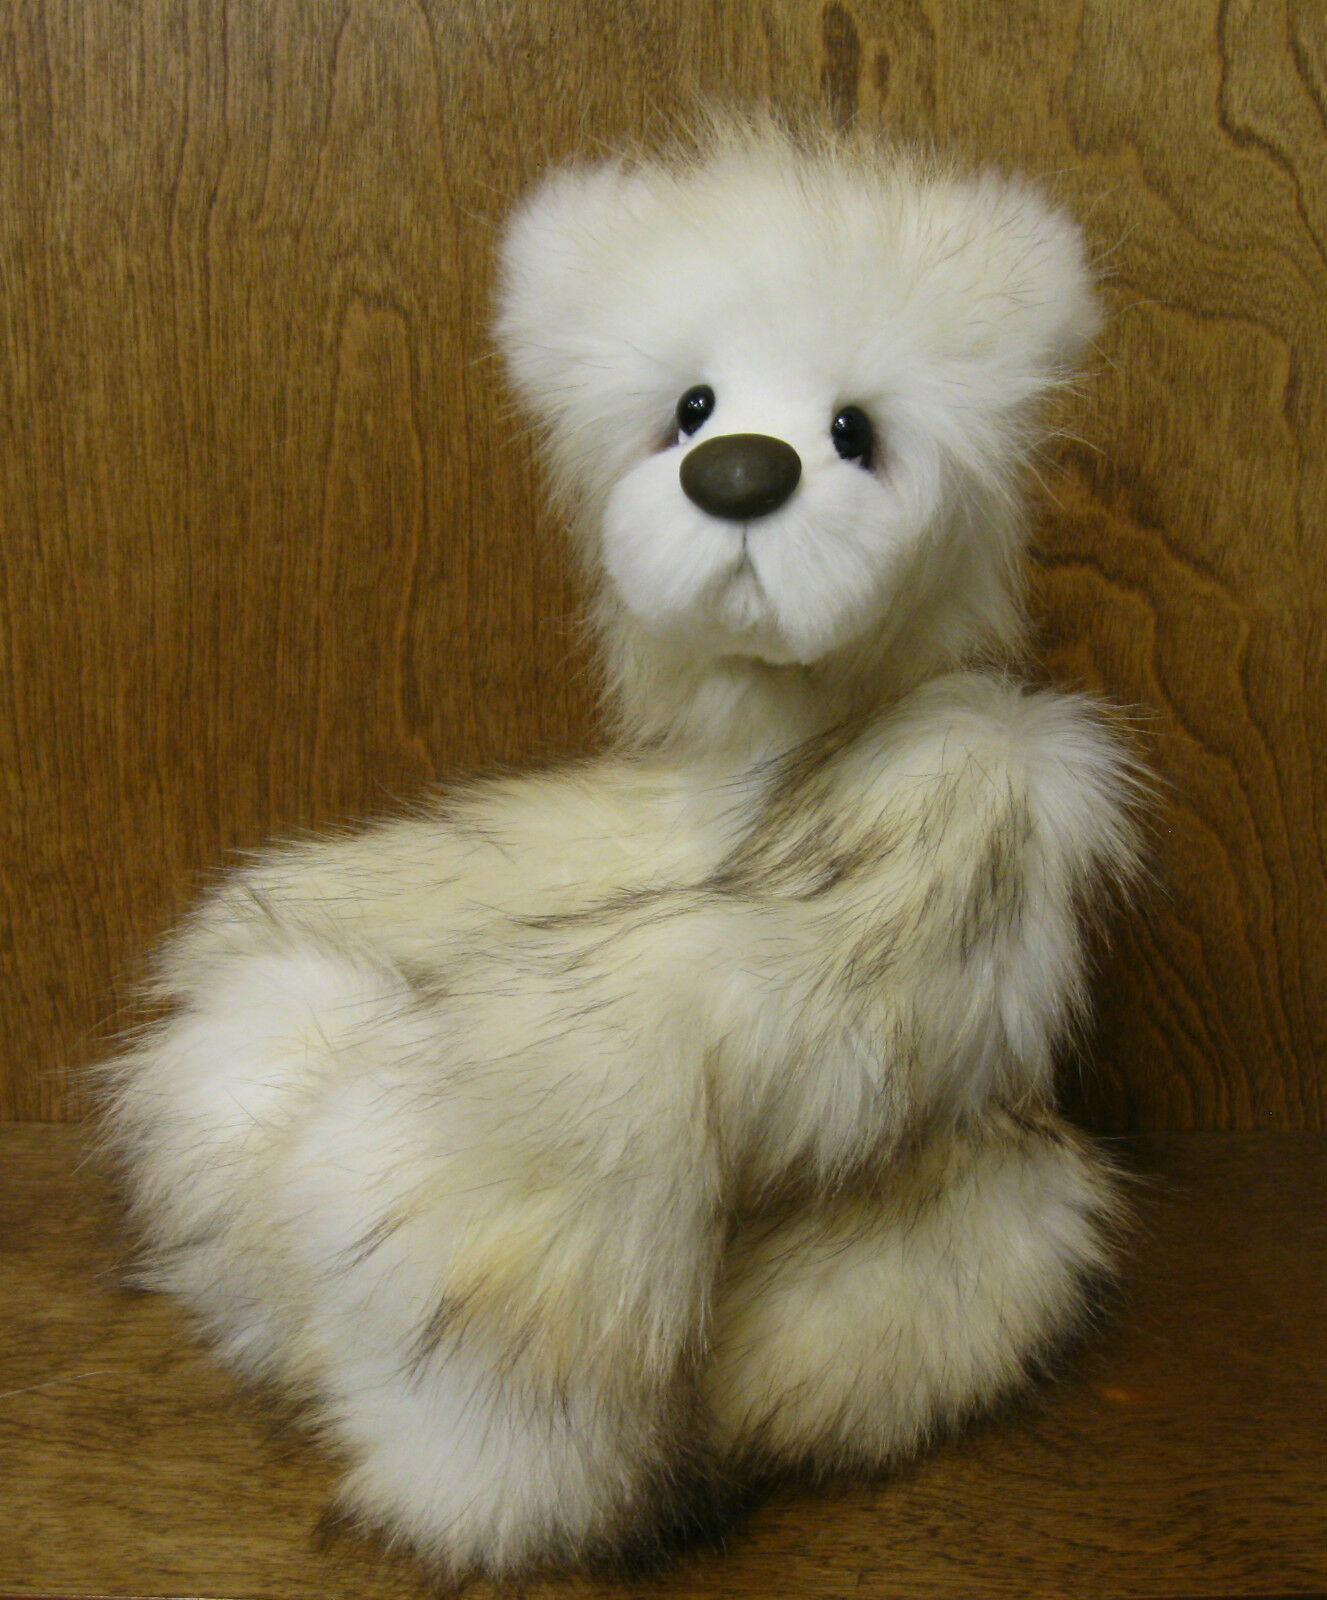 Artist Exclusive bianca  CLOUD by Pricilla Crosthwaite, 15  high, fully jointed